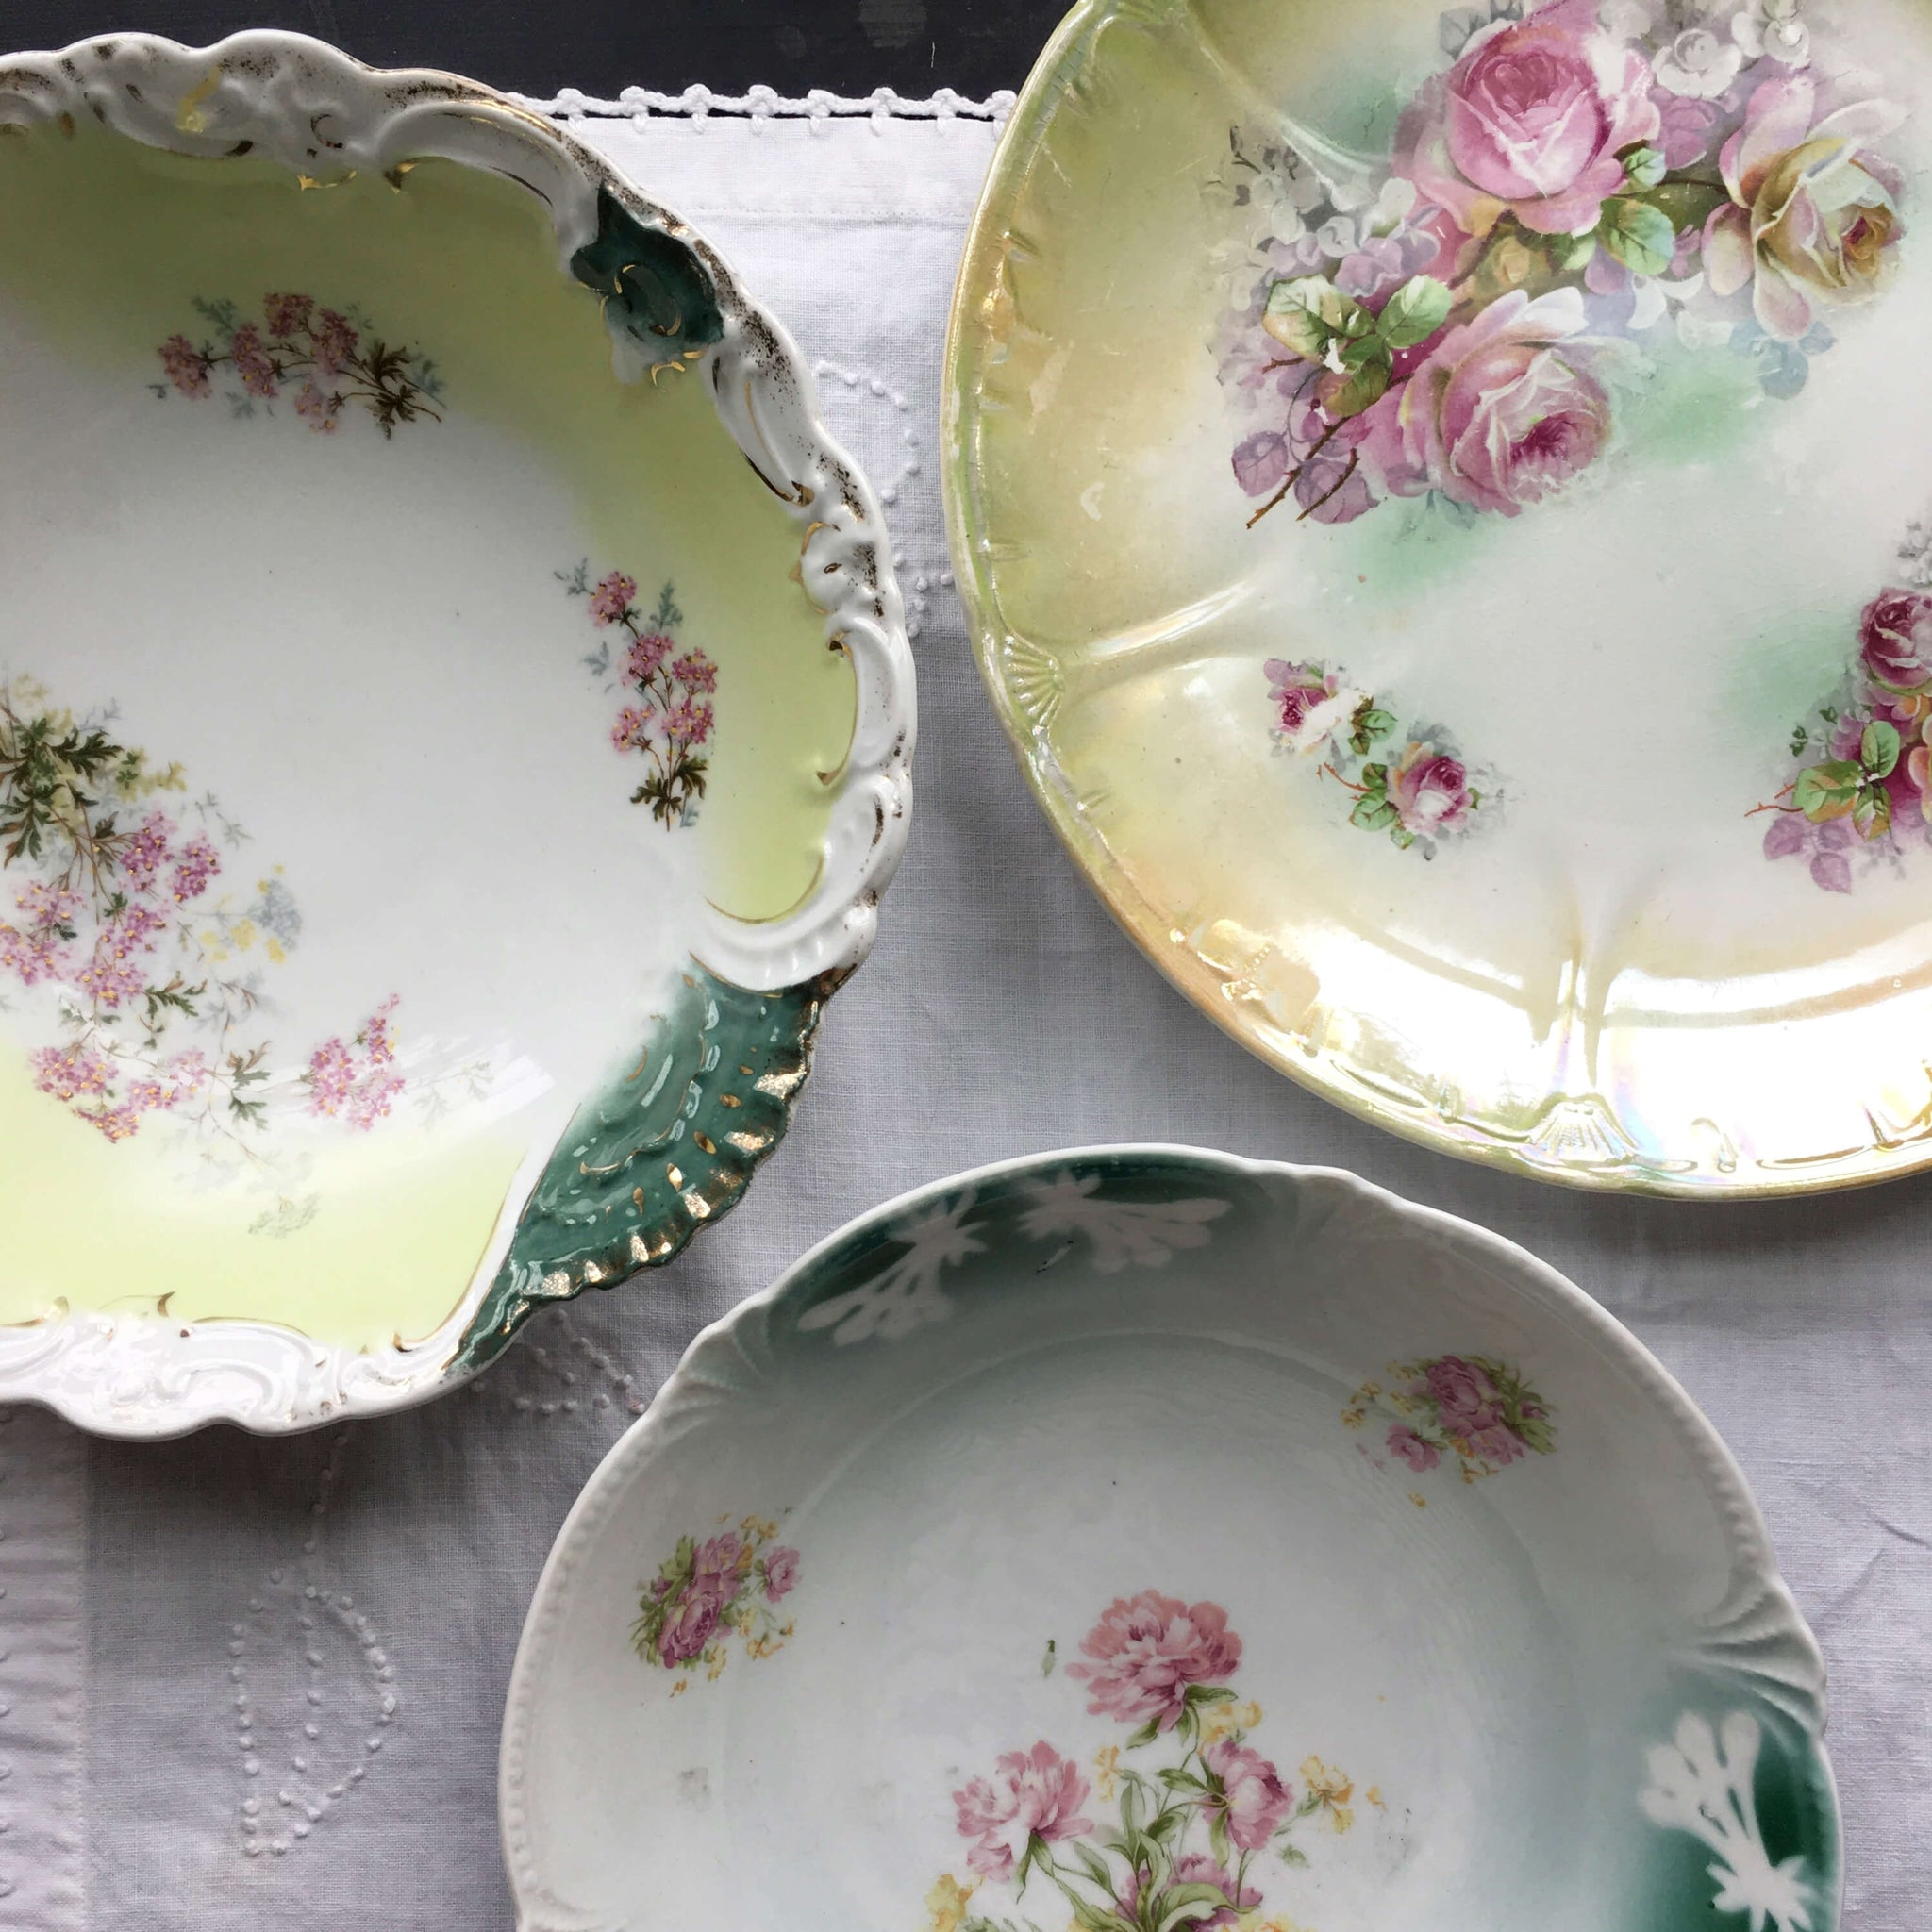 Antique Green and White Porcelain Bowl with Pink Flowers Gold Accents and Embossed Details